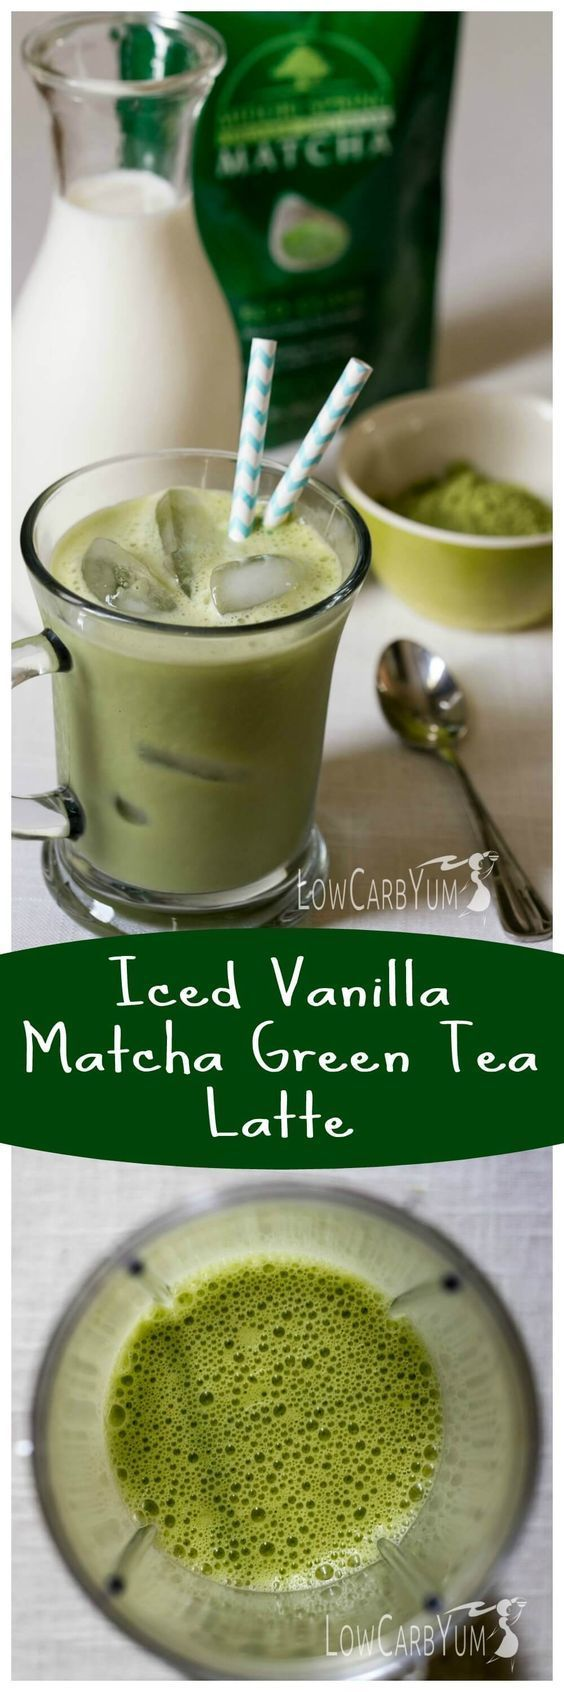 Need a healthier alternative to iced coffee? Try this low carb iced vanilla matcha green tea latte.  It's low in calories with less than 1 gram of carbs! http://LowCarbYum.com